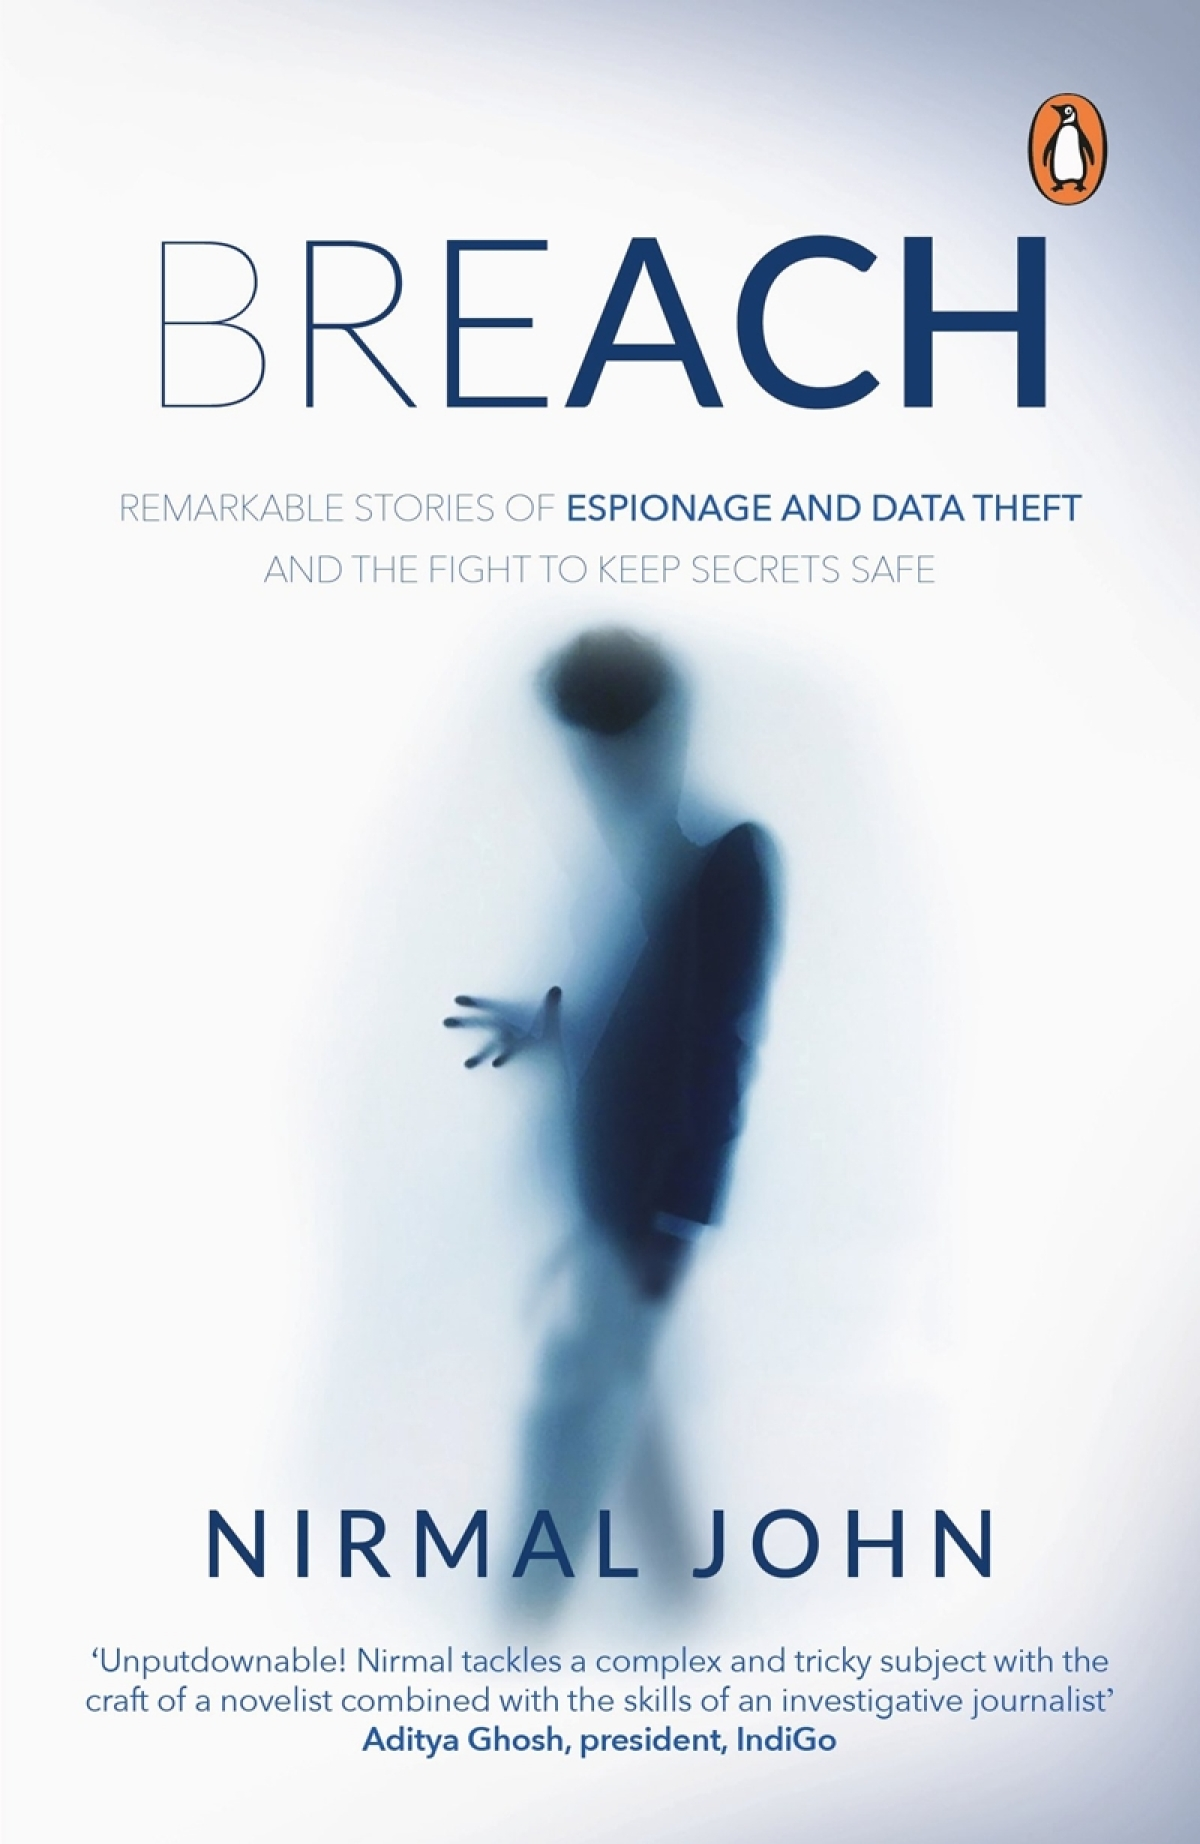 Breach: Remarkable Stories of Espionage and Data Theft and the Fight to Keep Secrets Safe by Nirmal John-Review